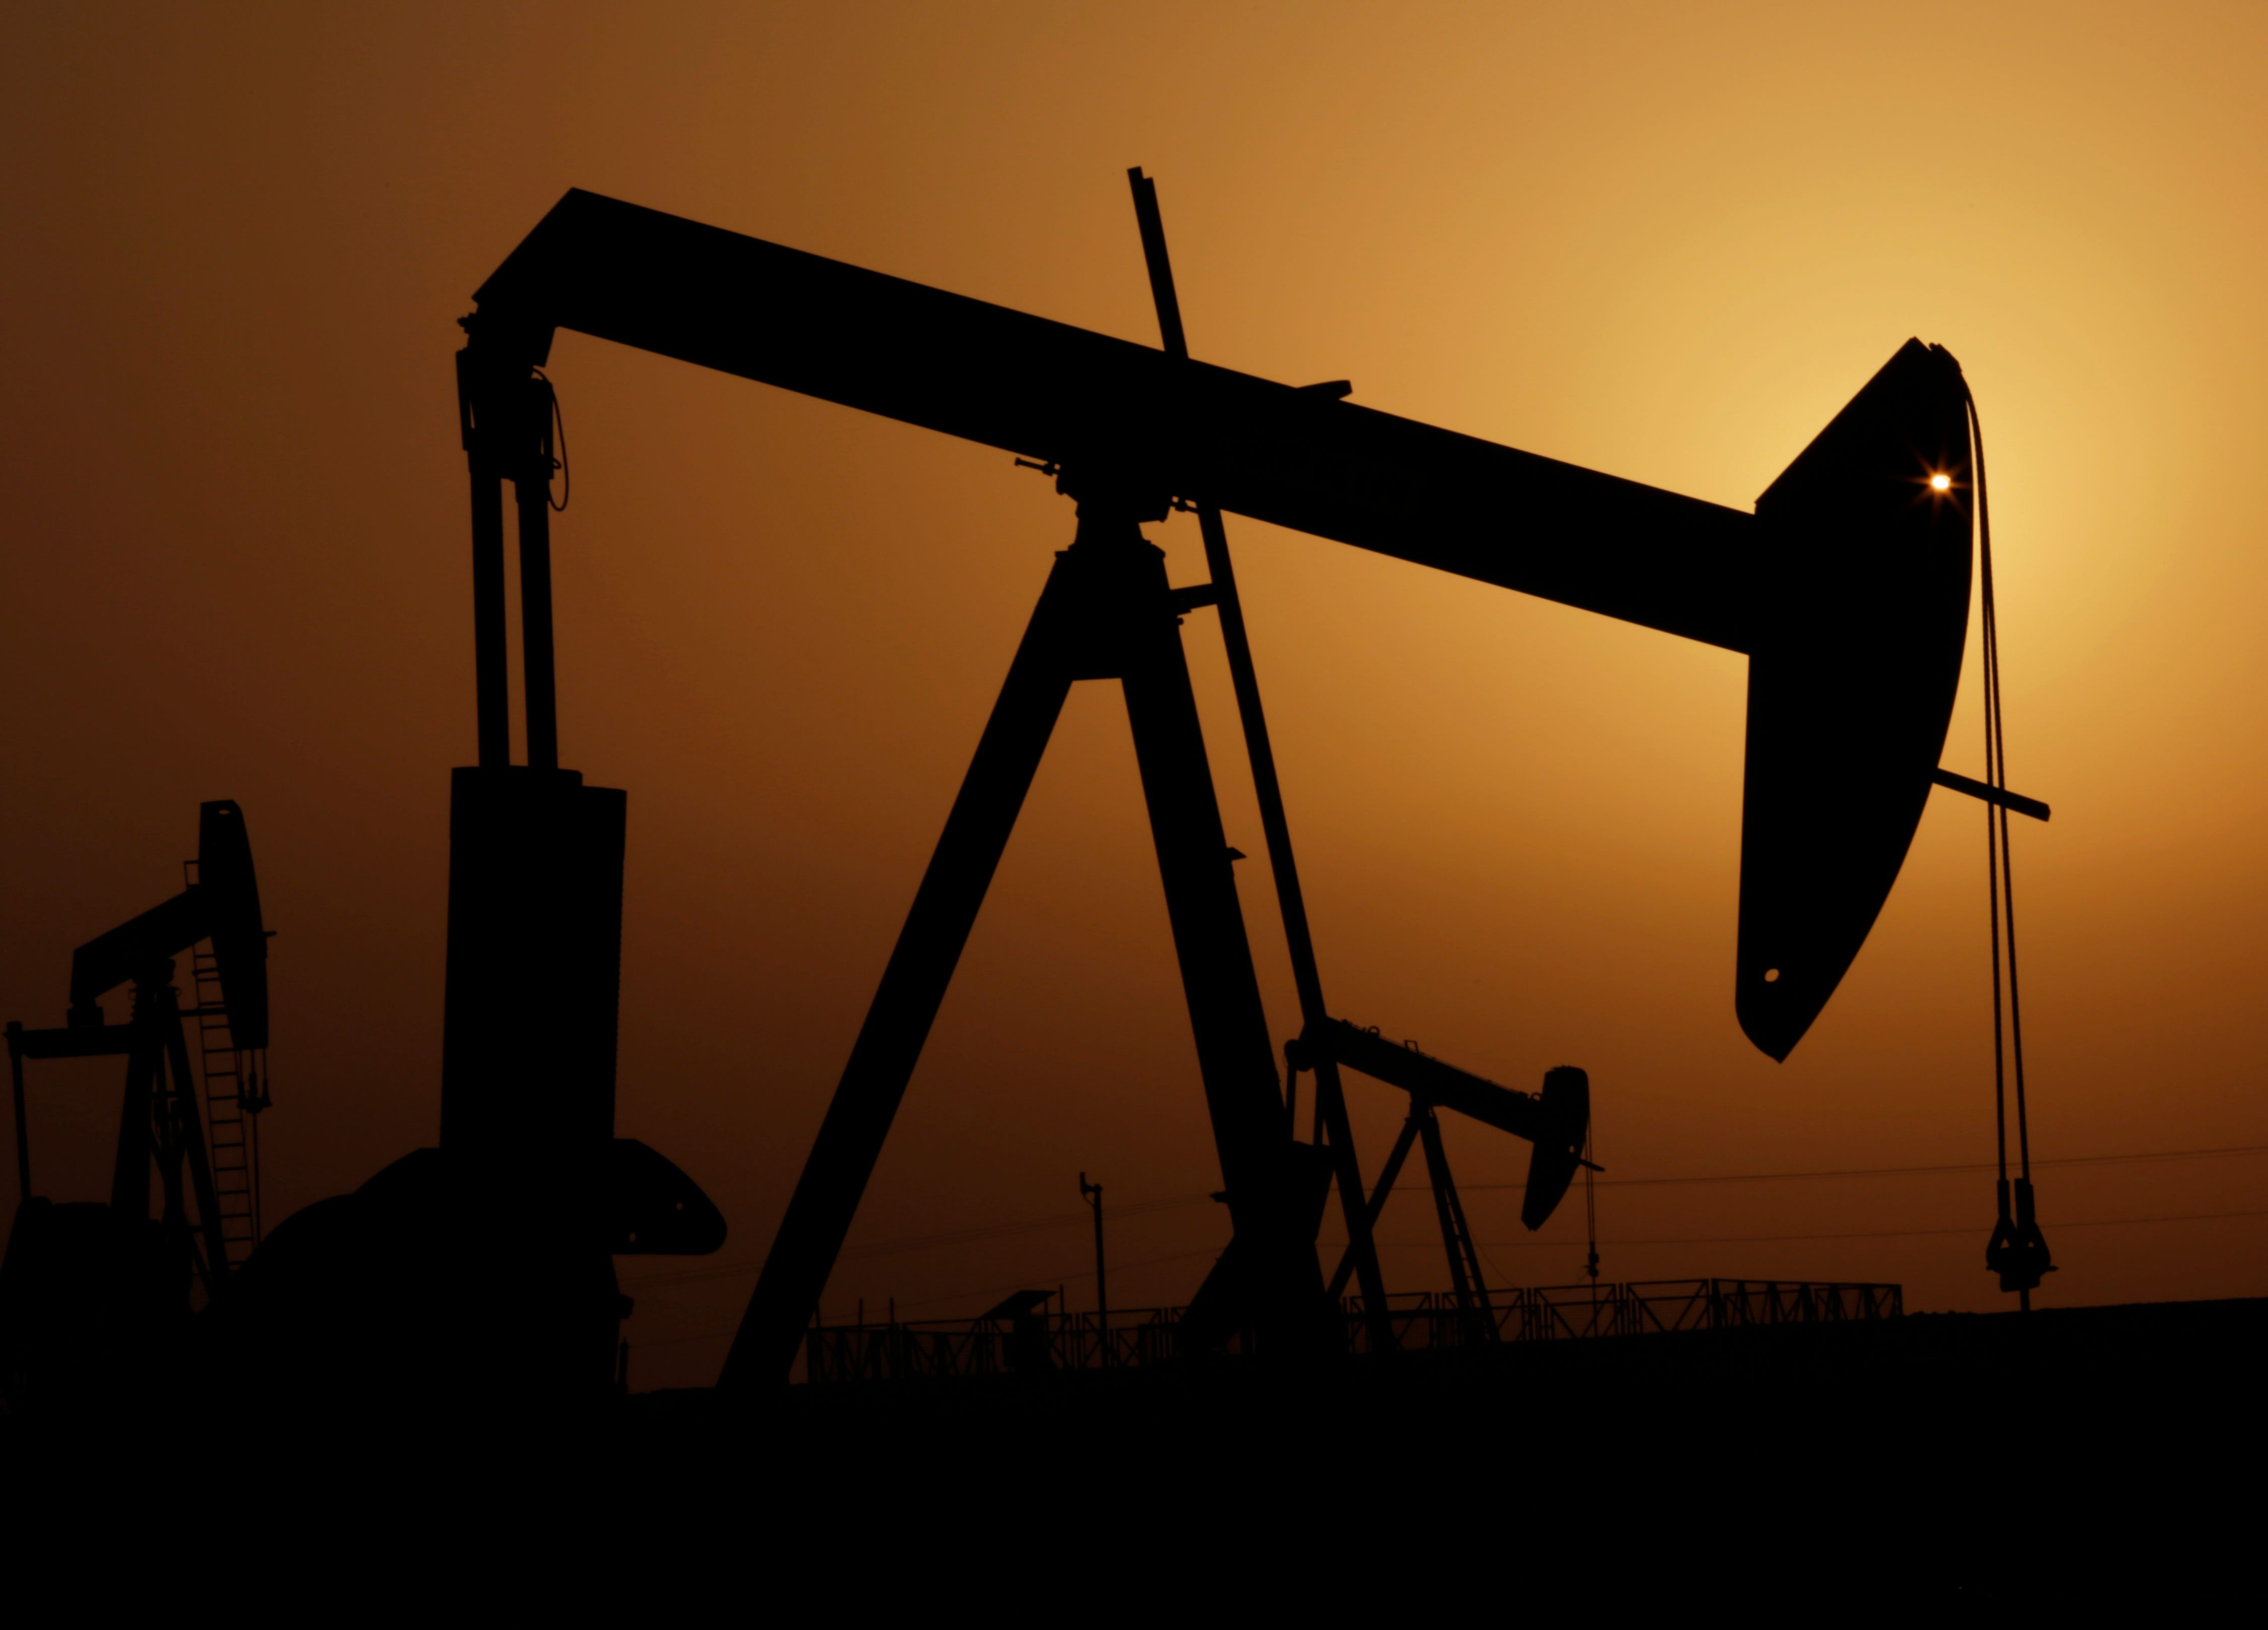 Oil producers see price slump outlasting recent rally